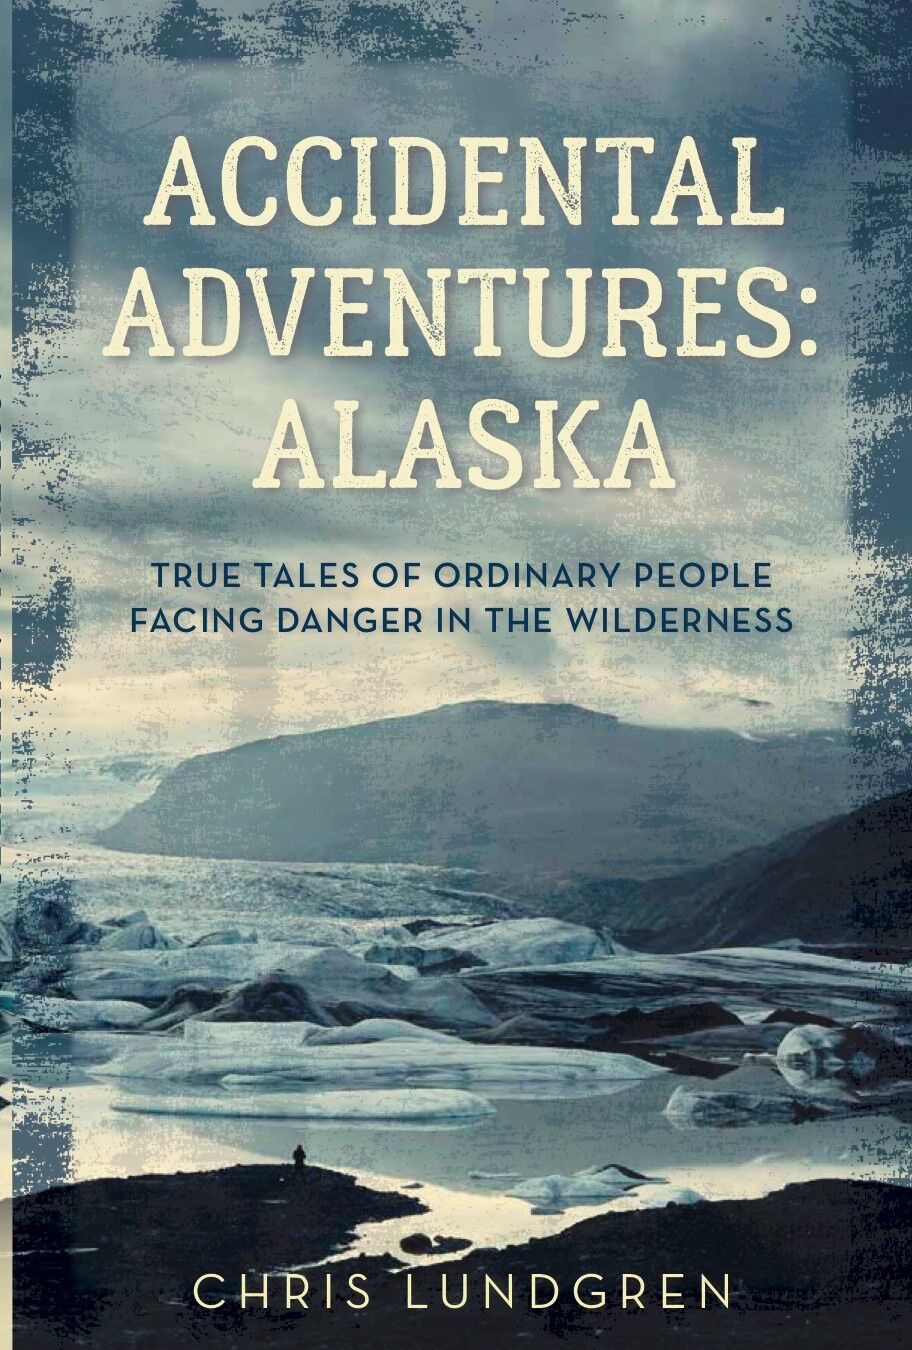 accidental adventures: alaska book cover